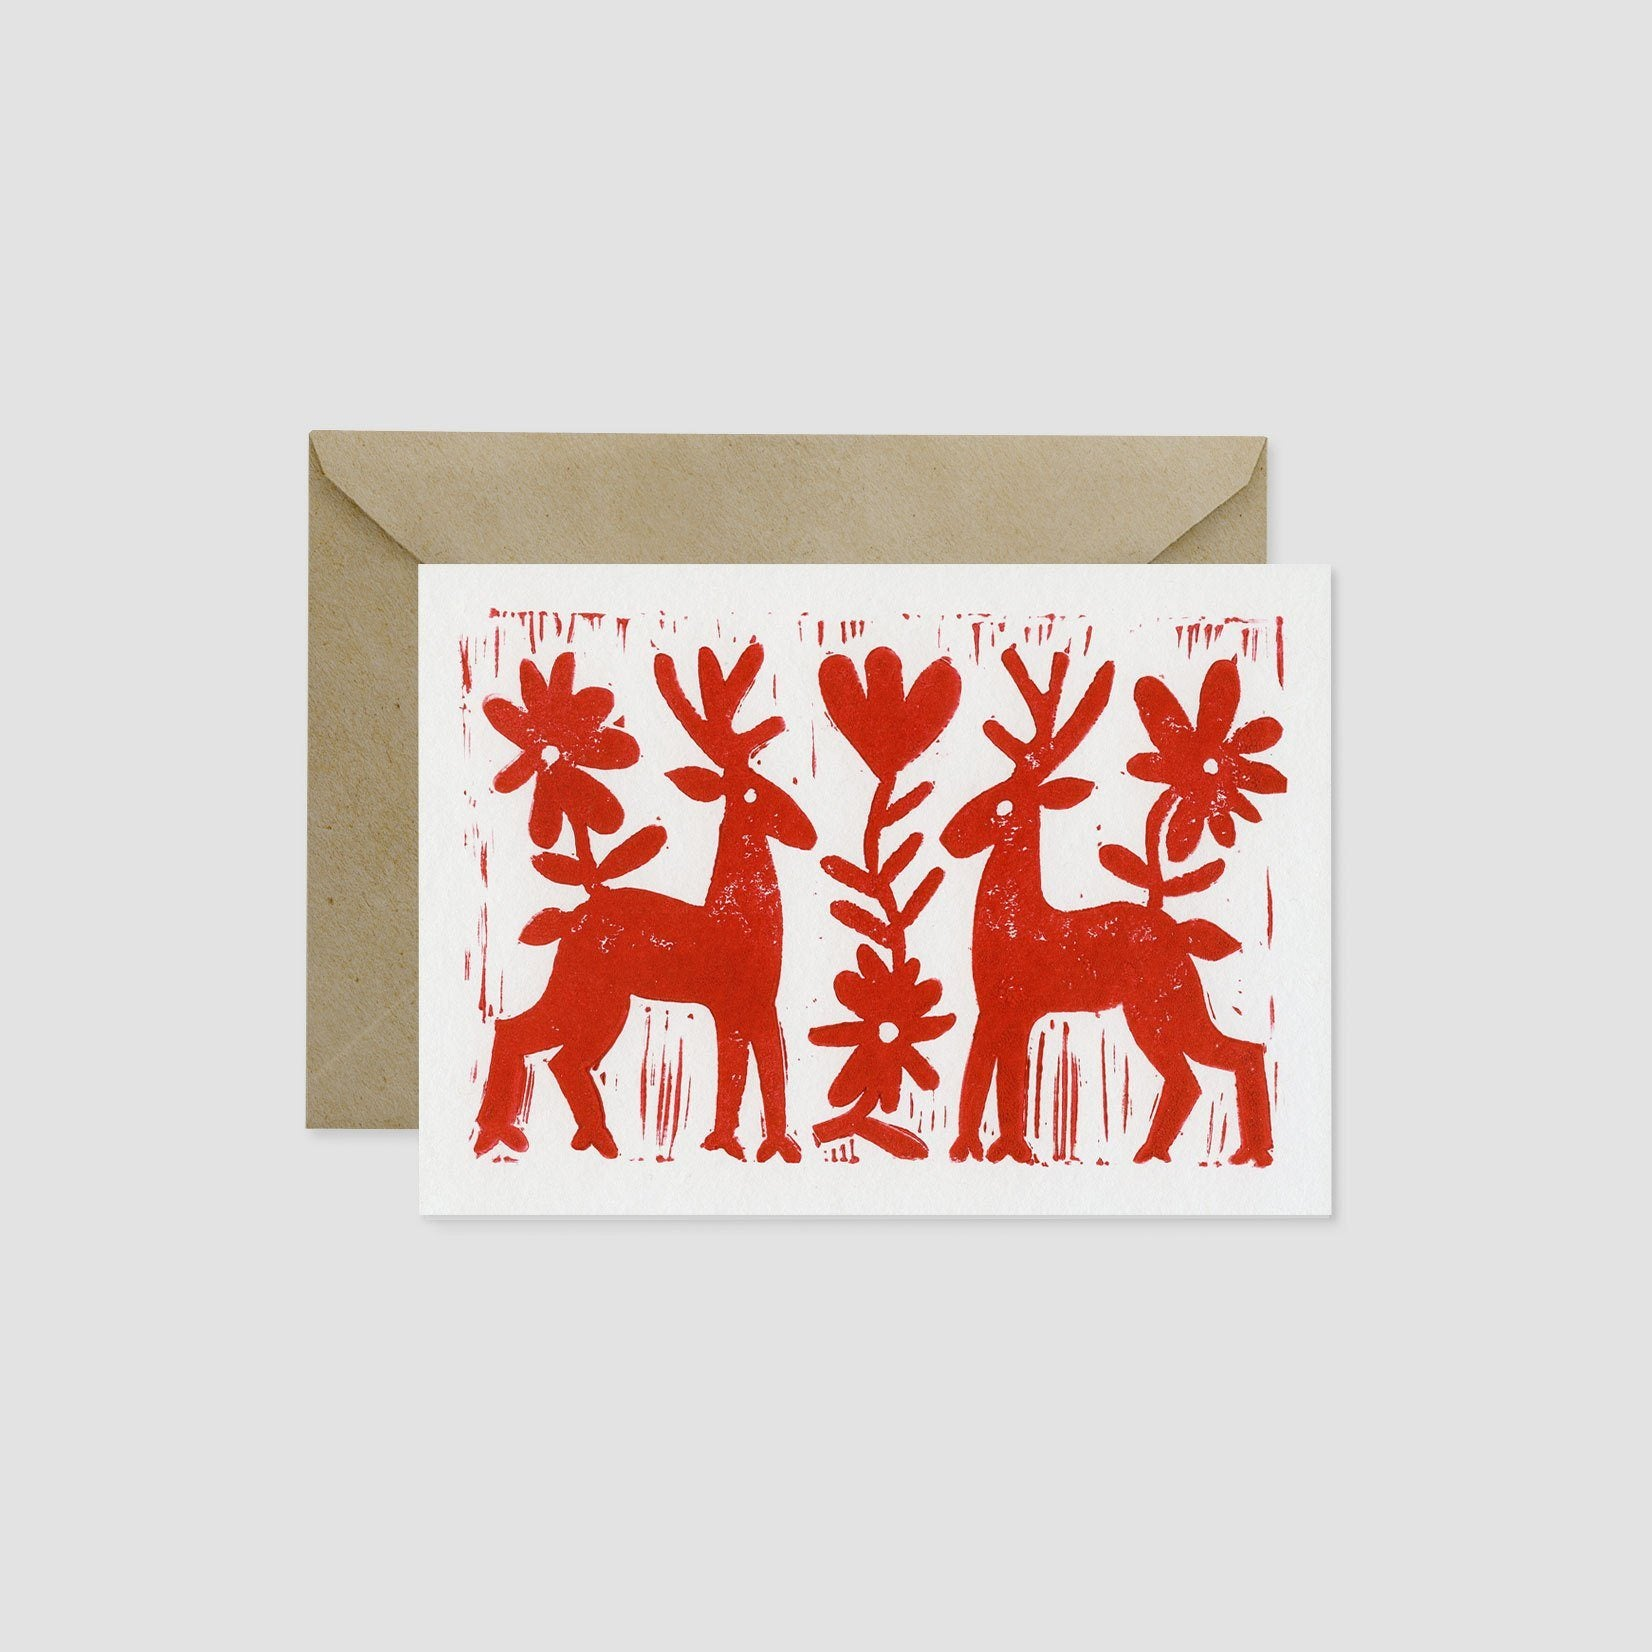 Wandering Paper Co. A7 Otomi Reindeer Card